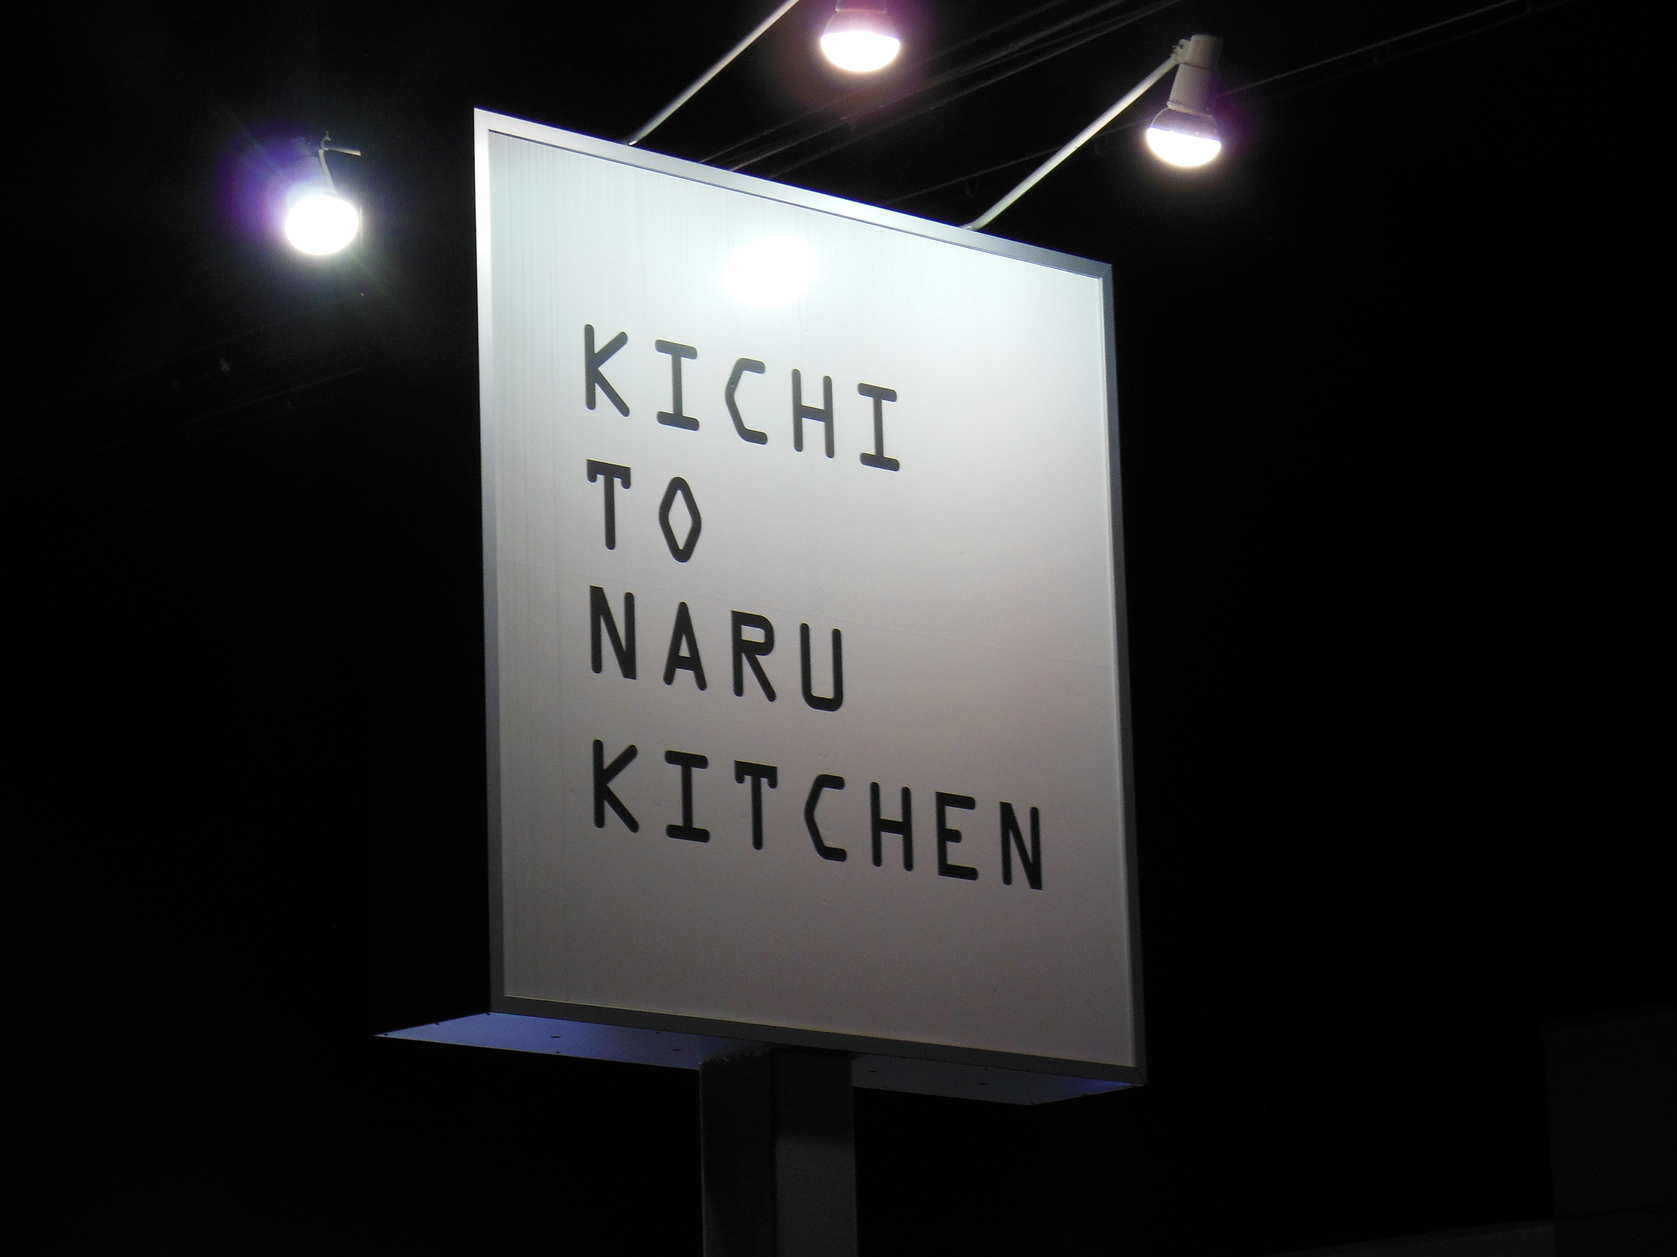 KICHITONARU KITCHEN 富士高嶺店